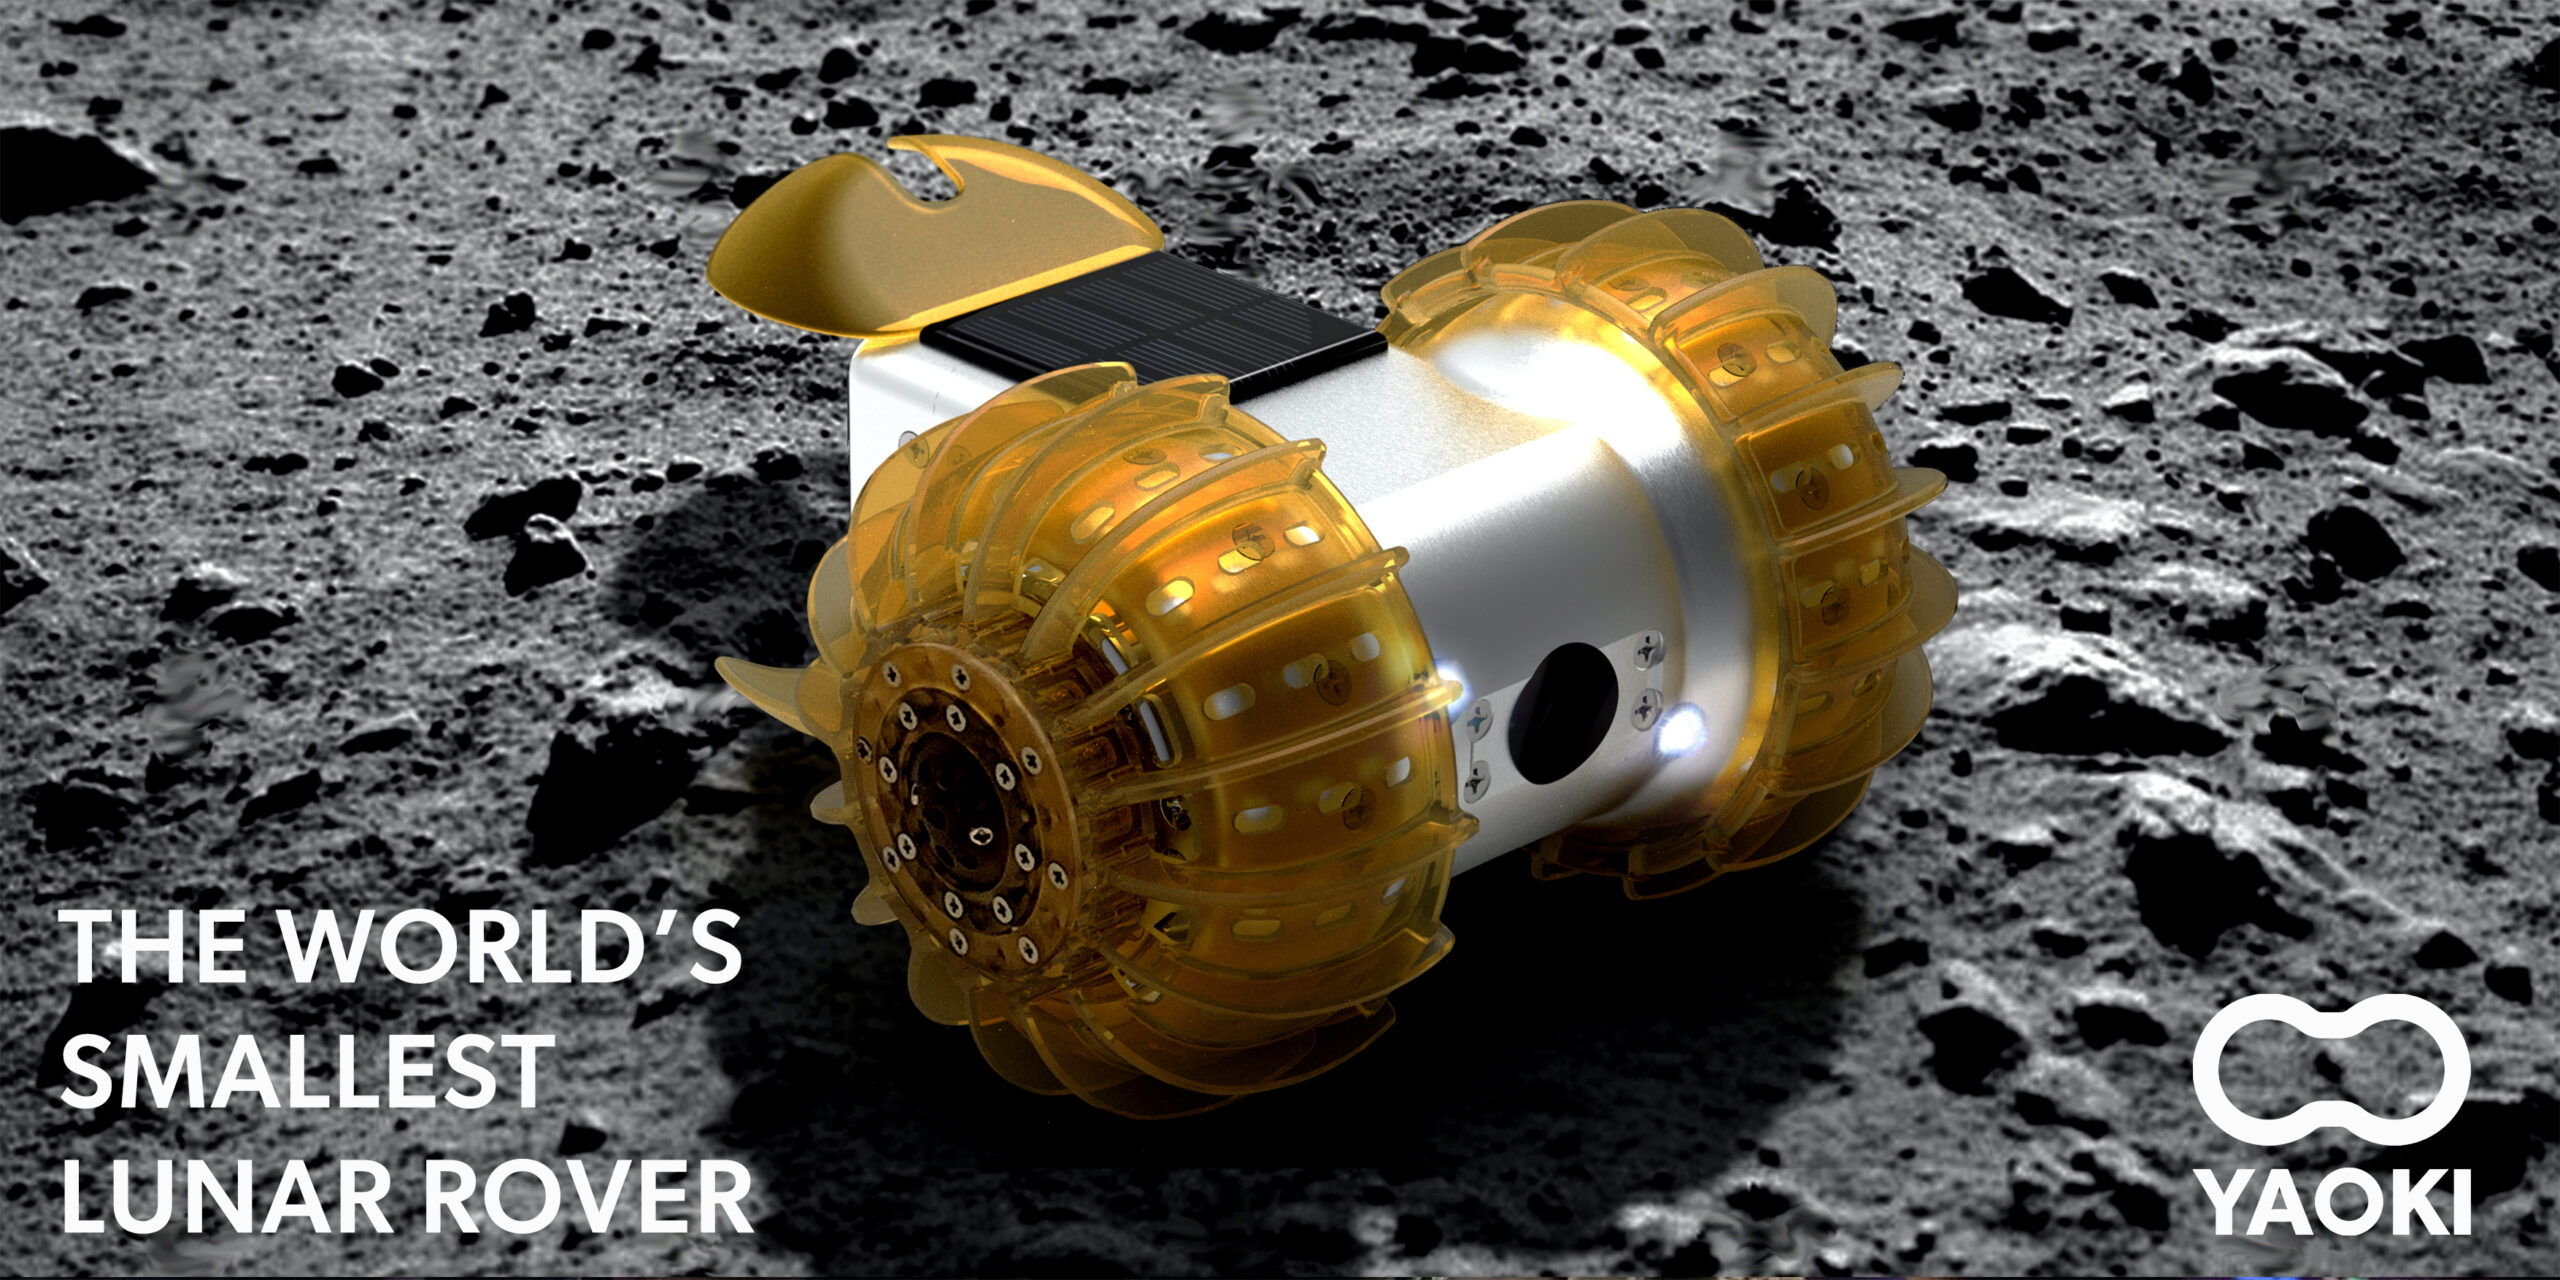 YAOKI THE WORLD'S SMALLEST LUNAR ROVER